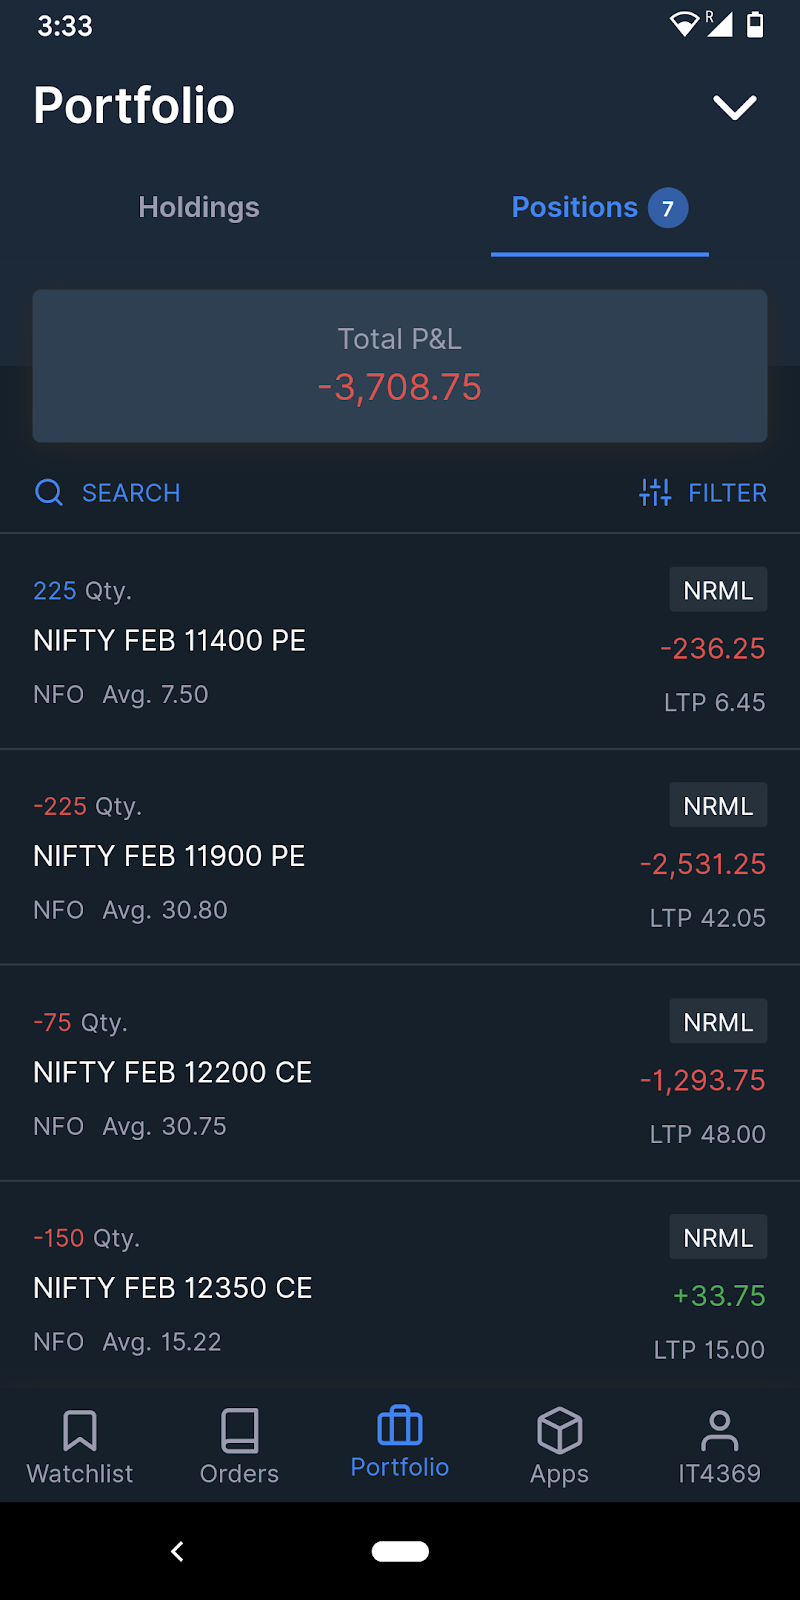 P&L for 17 Feb